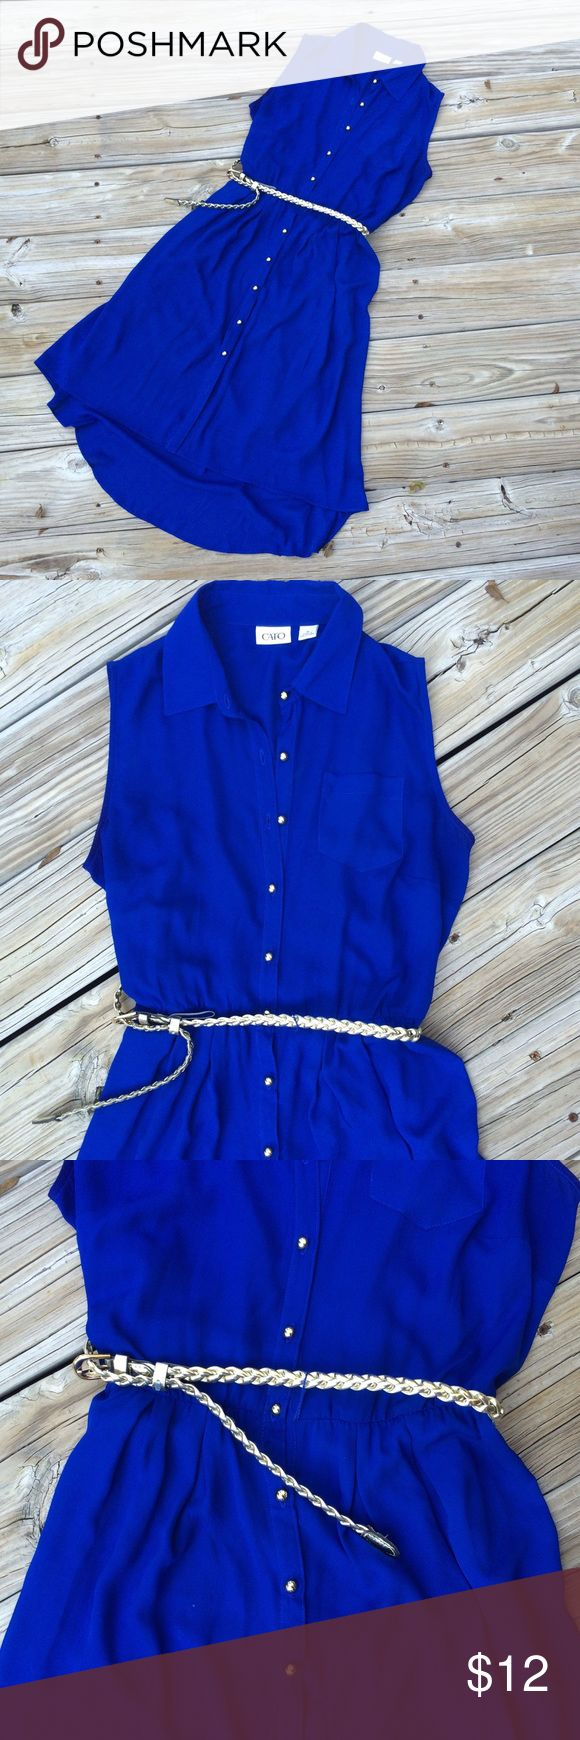 Royal Blue Belted Dress! Layered up with boots and a cardigan or worn alone with flats and your favorite accessories, this royal blue stunner is meant for you! Cato, size 10. Fits true to size and includes a royal blue slip/lining as an additional means of structure and coverage! Feel free to make an offer! Desperate to downsize and minimalize, so all reasonable offers are welcomed! ❤️ Cato Dresses